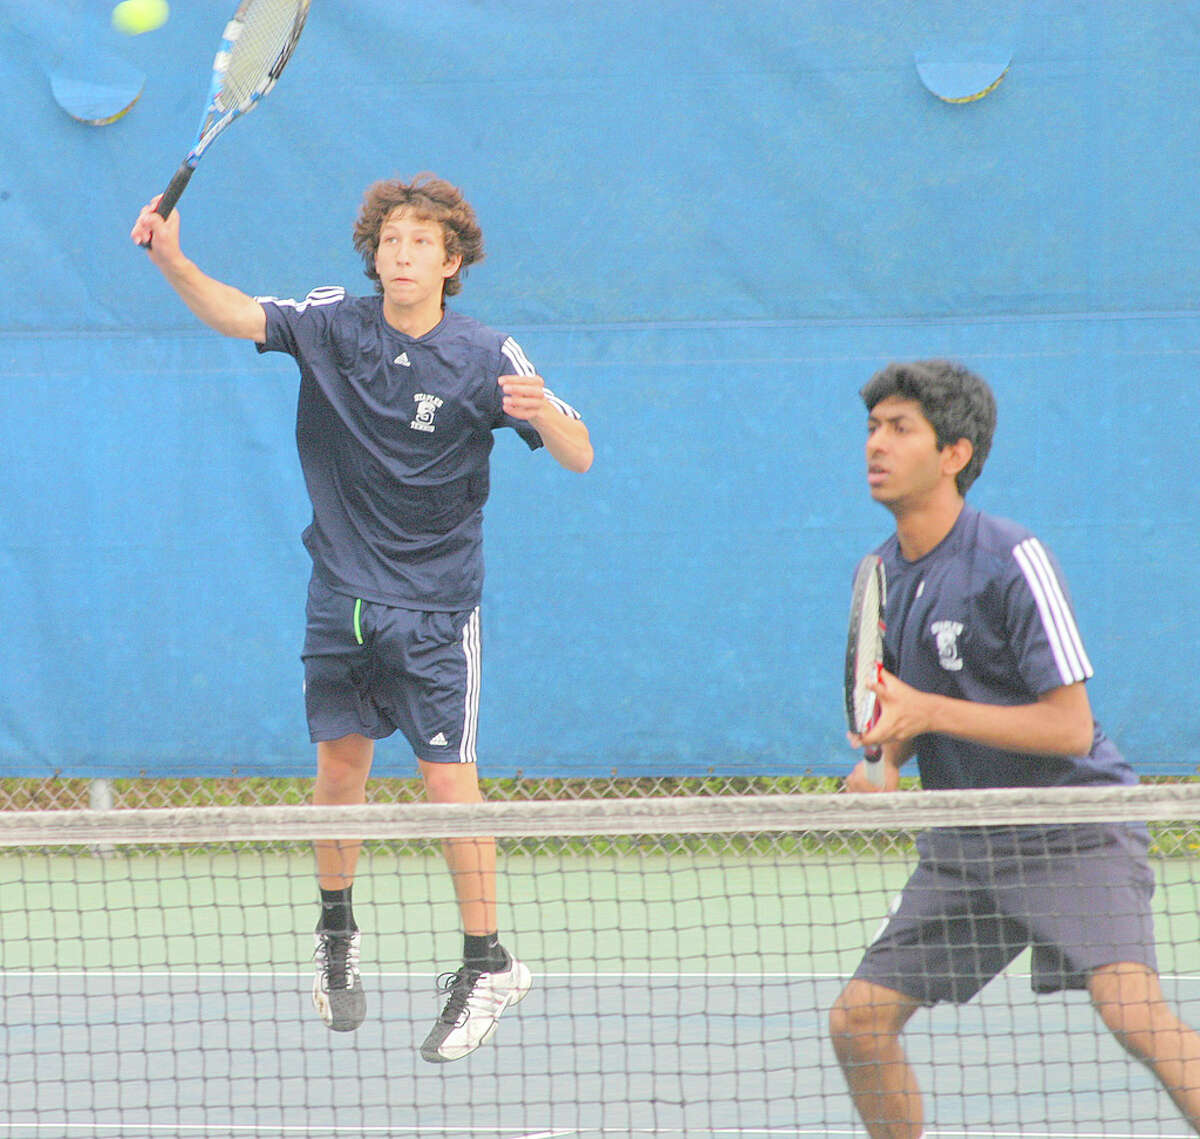 Staples senior Josh Kaseff returns a volley at third doubles Tuesday against Weston. Kaseff and senior Jehnir Hafiz defeated Henry Morris and Ben Lander, 6-3, 6-0 in the Wreckers' 7-0 victory.